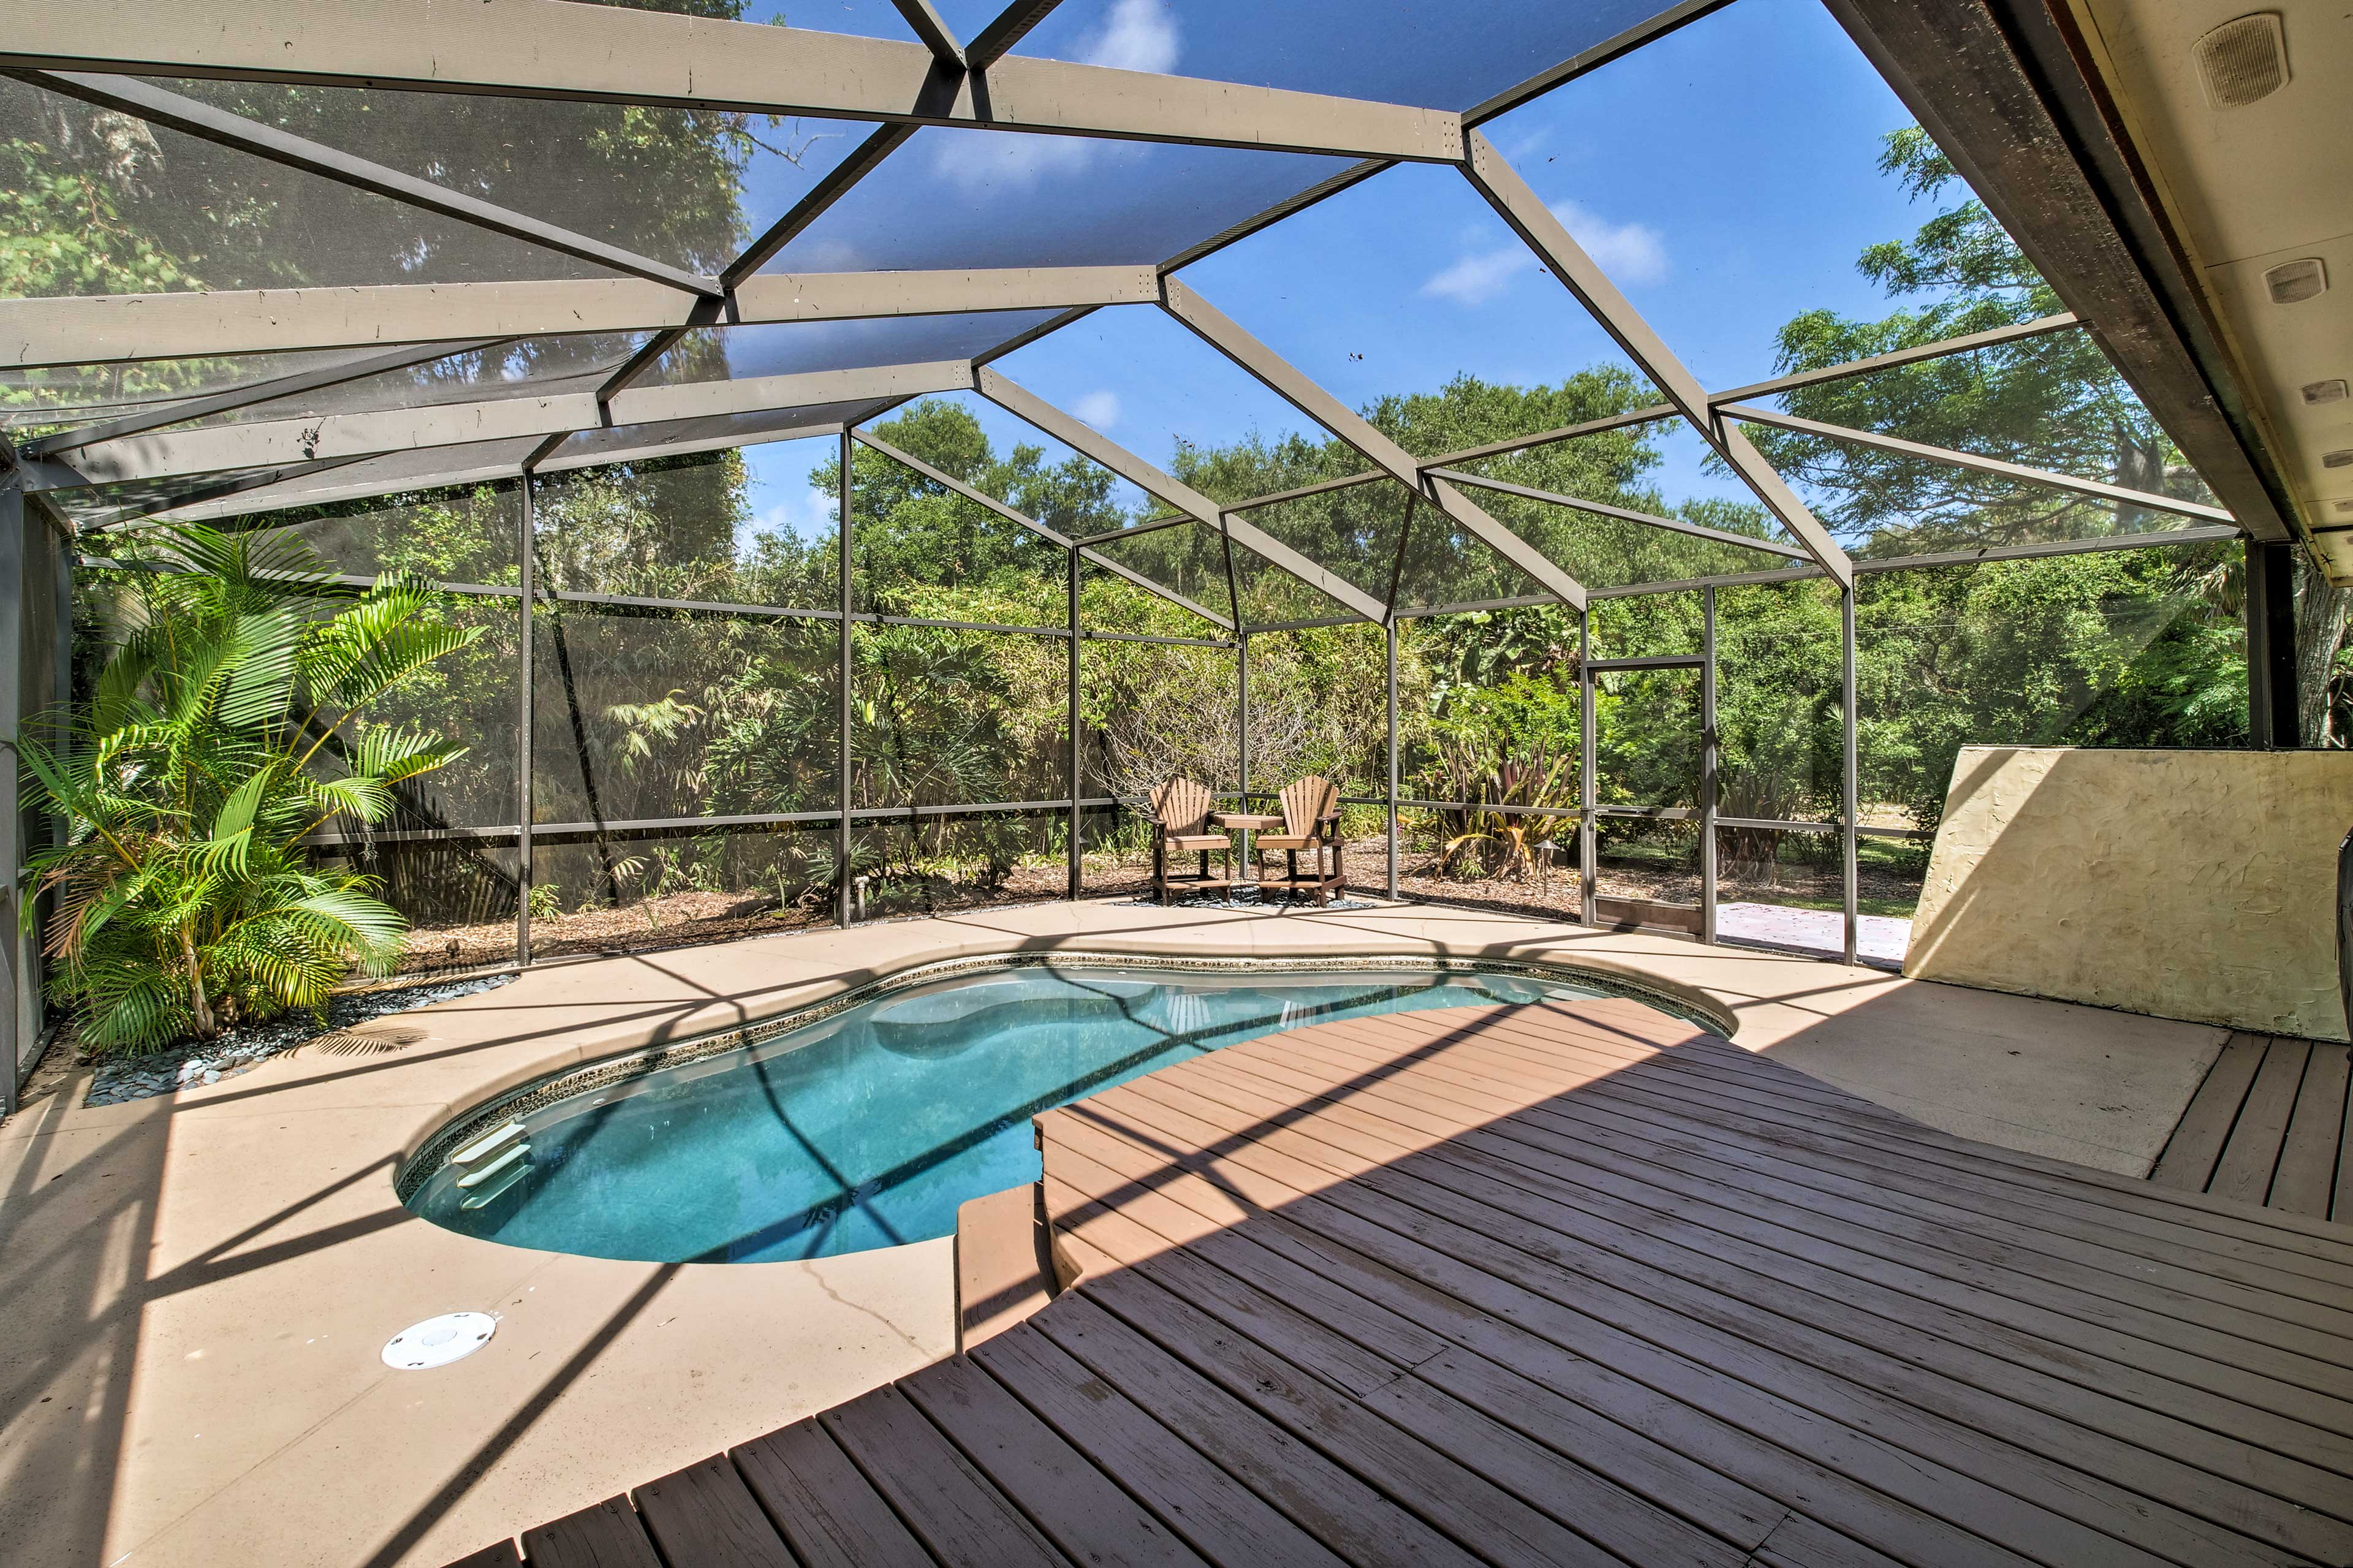 Enjoy the privacy of a secluded screened-in pool and spacious deck.